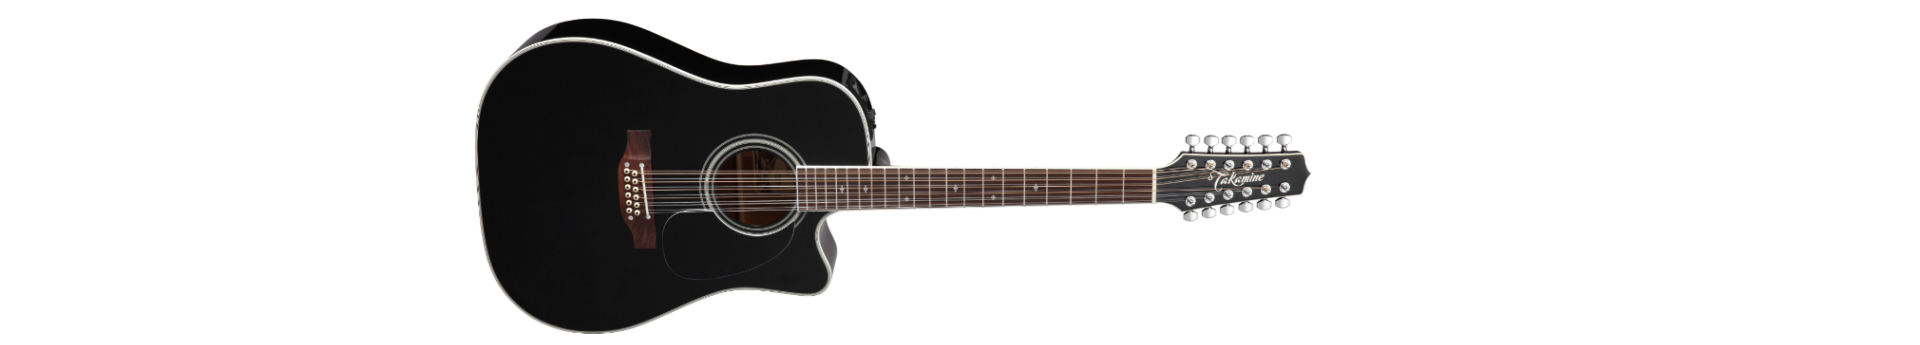 Cable vector guitar. Takamine guitars product details